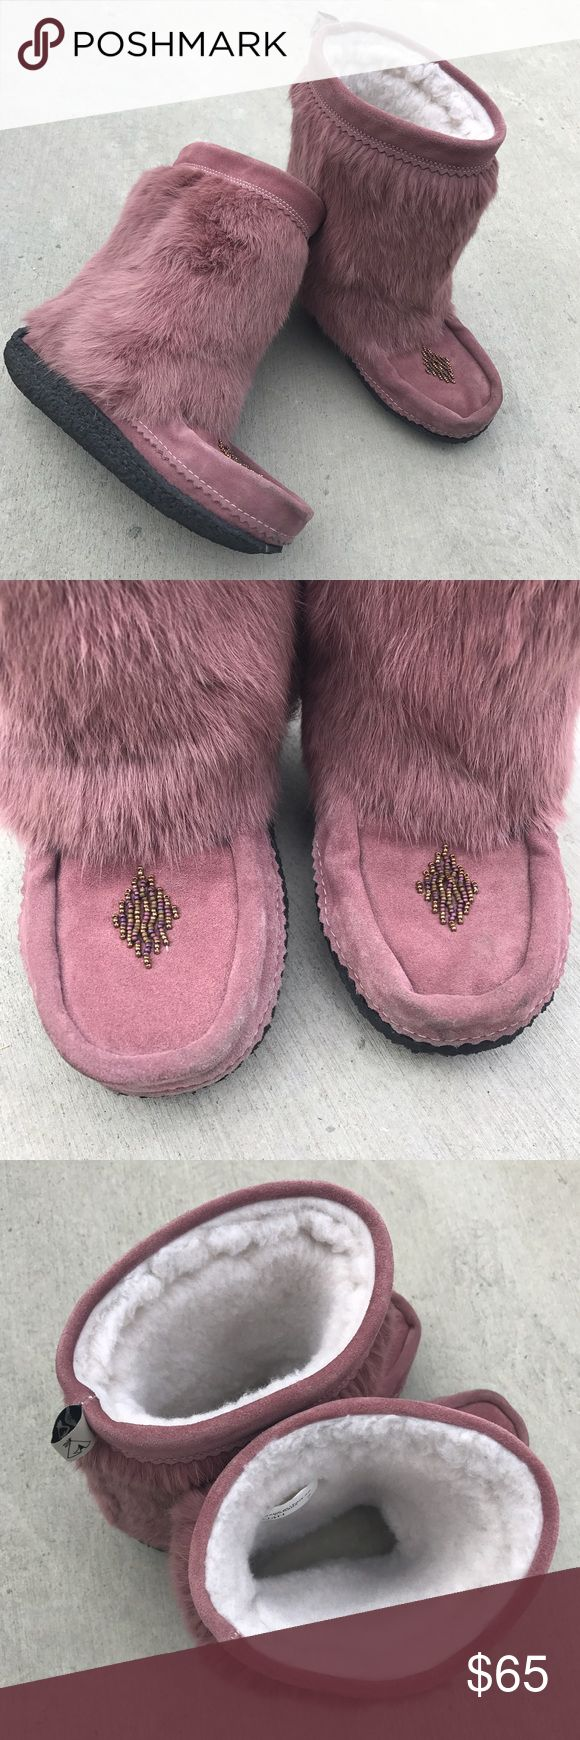 "Muks Rabbit Fur Boots • Genuine rabbit fur and suede upper • Beads forming diamond shape at front • Genuine sheepskin footbed • 9"" shaft height • 1"" platform • Only worn a couple times and in excellent condition - some dirt at front of shoes Muk Luks Shoes Winter & Rain Boots"